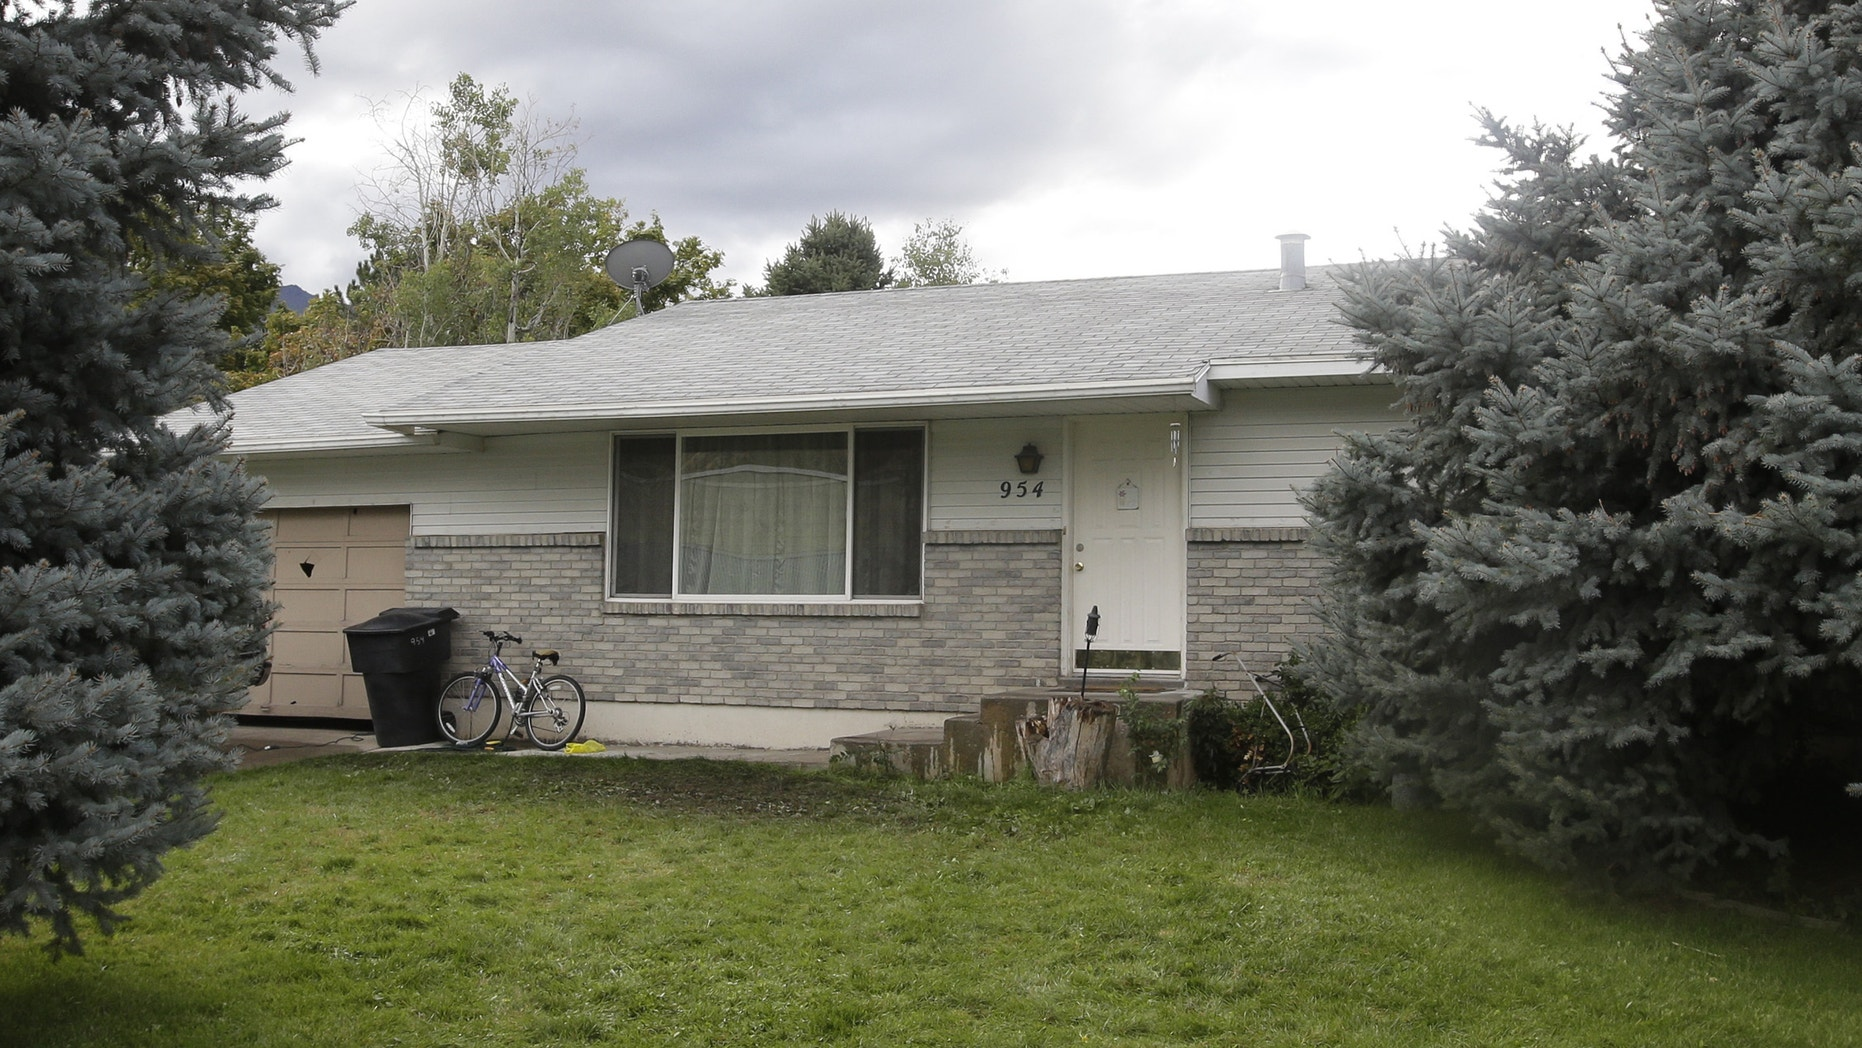 Sept. 28, 2014: The home where five Utah family members found dead in their home, in Springville, Utah